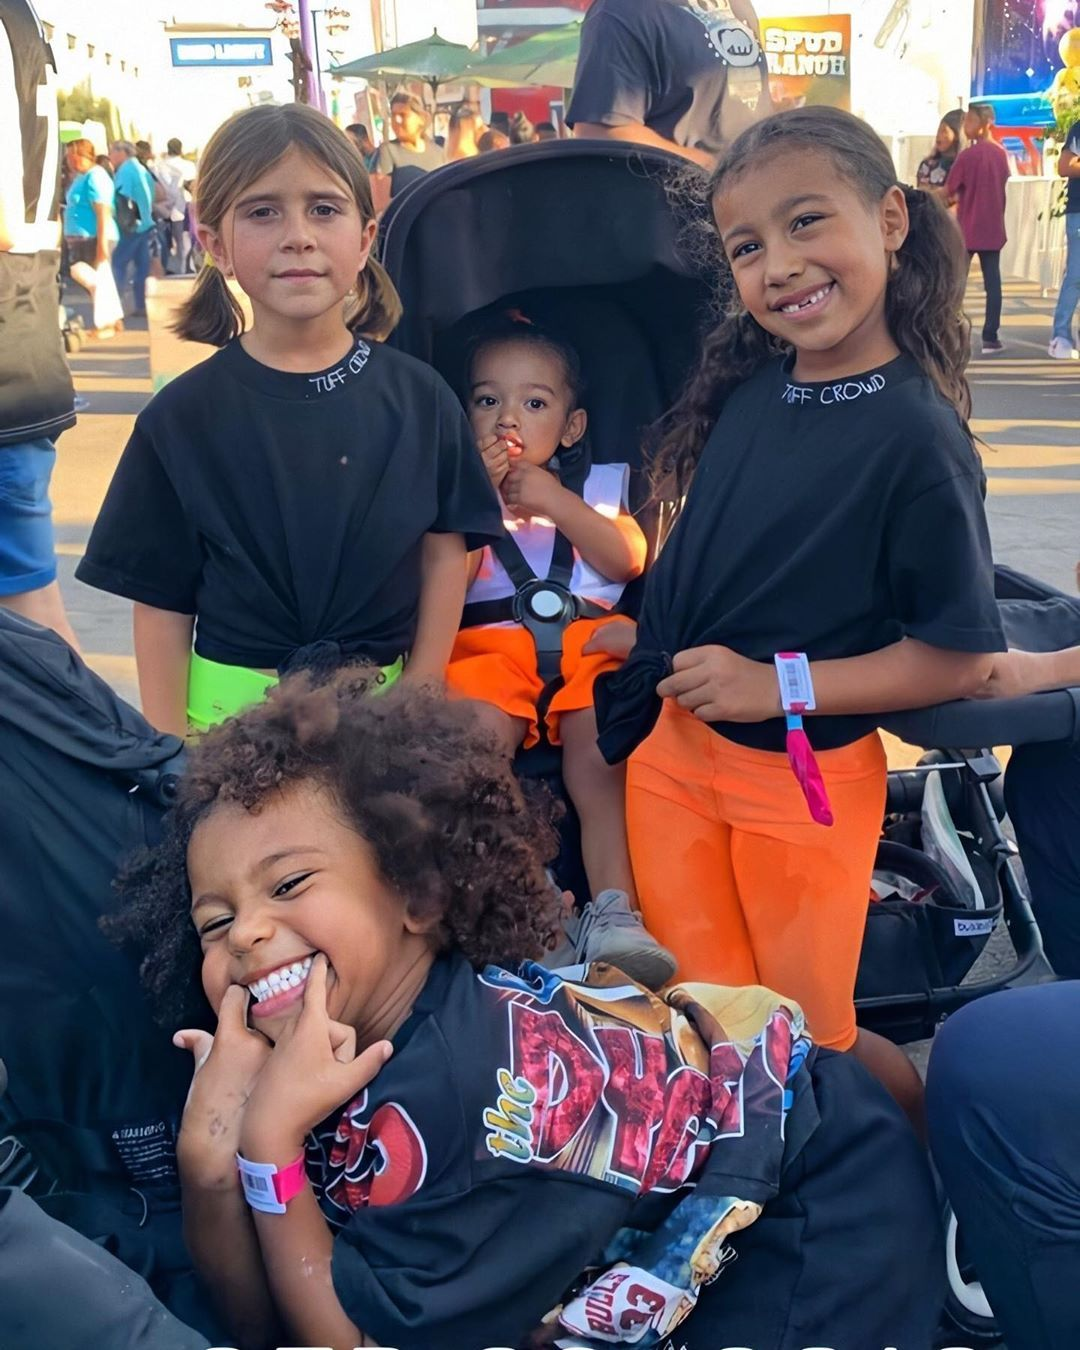 Kkwlive On Instagram This Is What It S All About Family Love Life Hope You Guys Had The Best New Ye Kardashian Kids Cute Kids Fashion Celebrity Kids